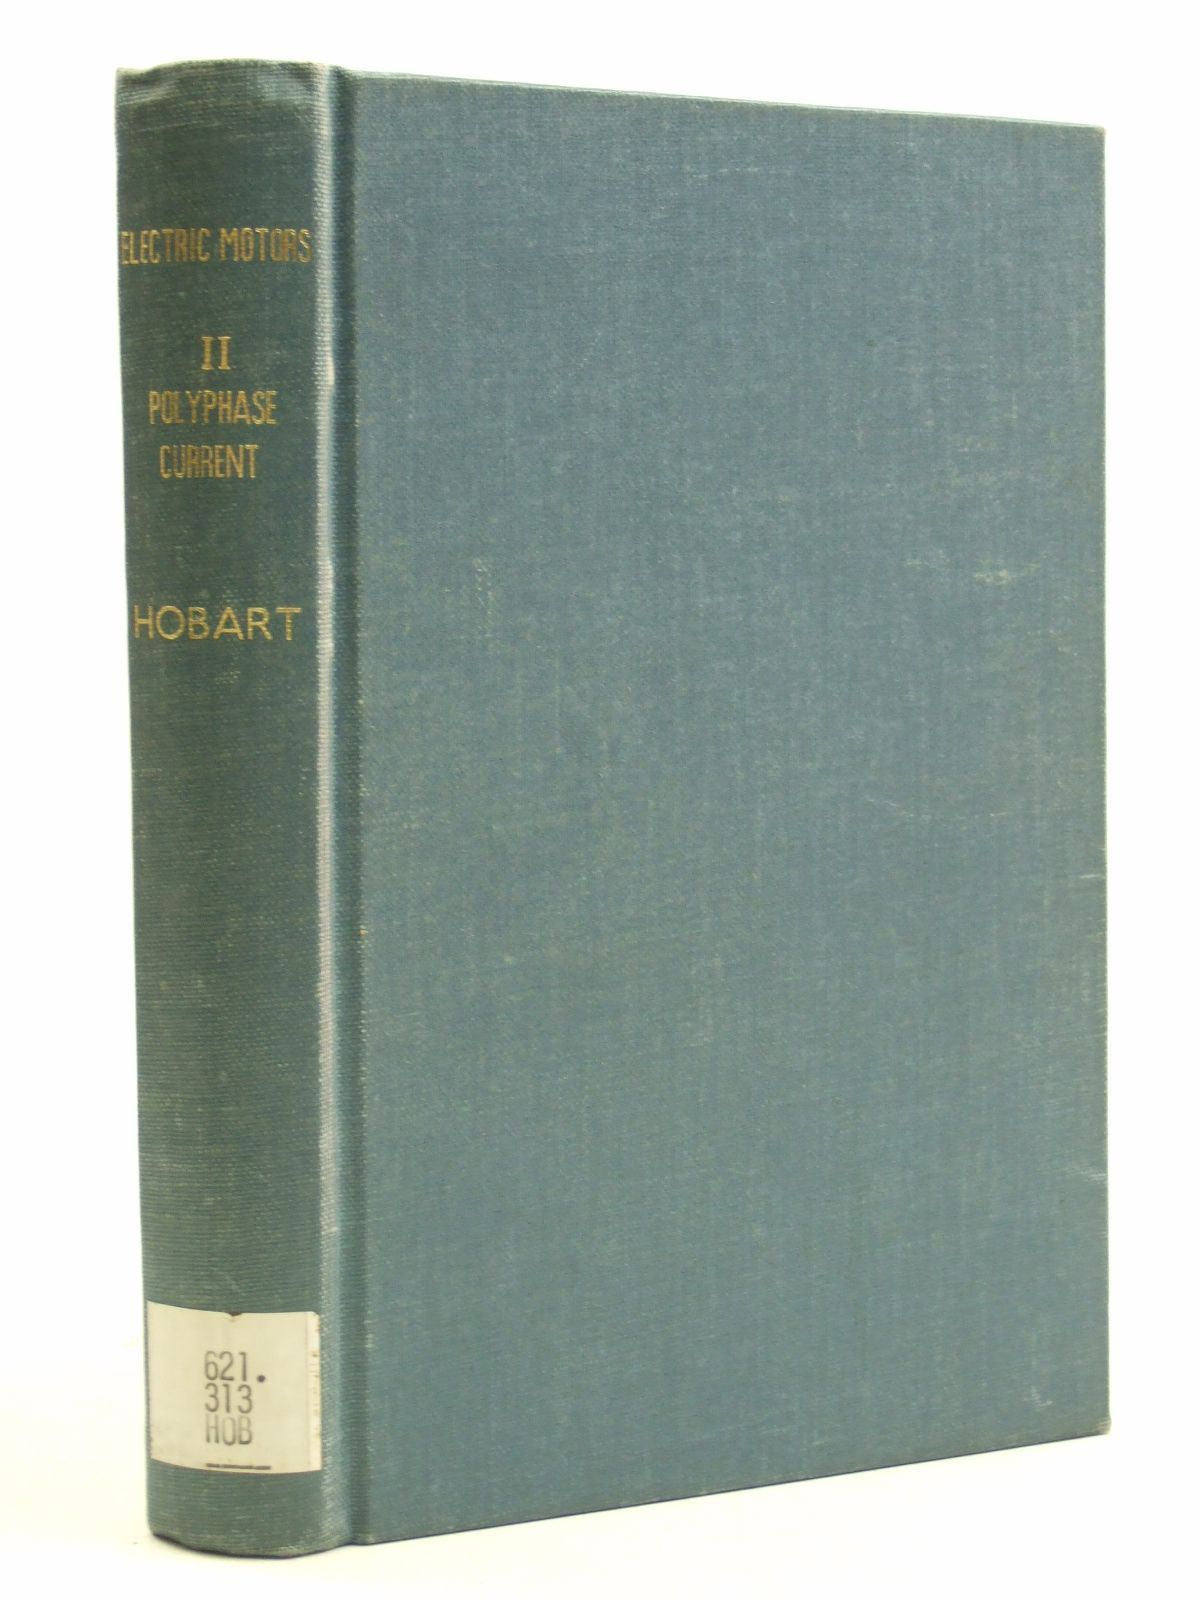 Photo of ELECTRIC MOTORS THEIR THEORY AND CONSTRUCTION VOLUME II written by Hobart, Henry M. published by Sir Isaac Pitman & Sons Ltd. (STOCK CODE: 1604121)  for sale by Stella & Rose's Books